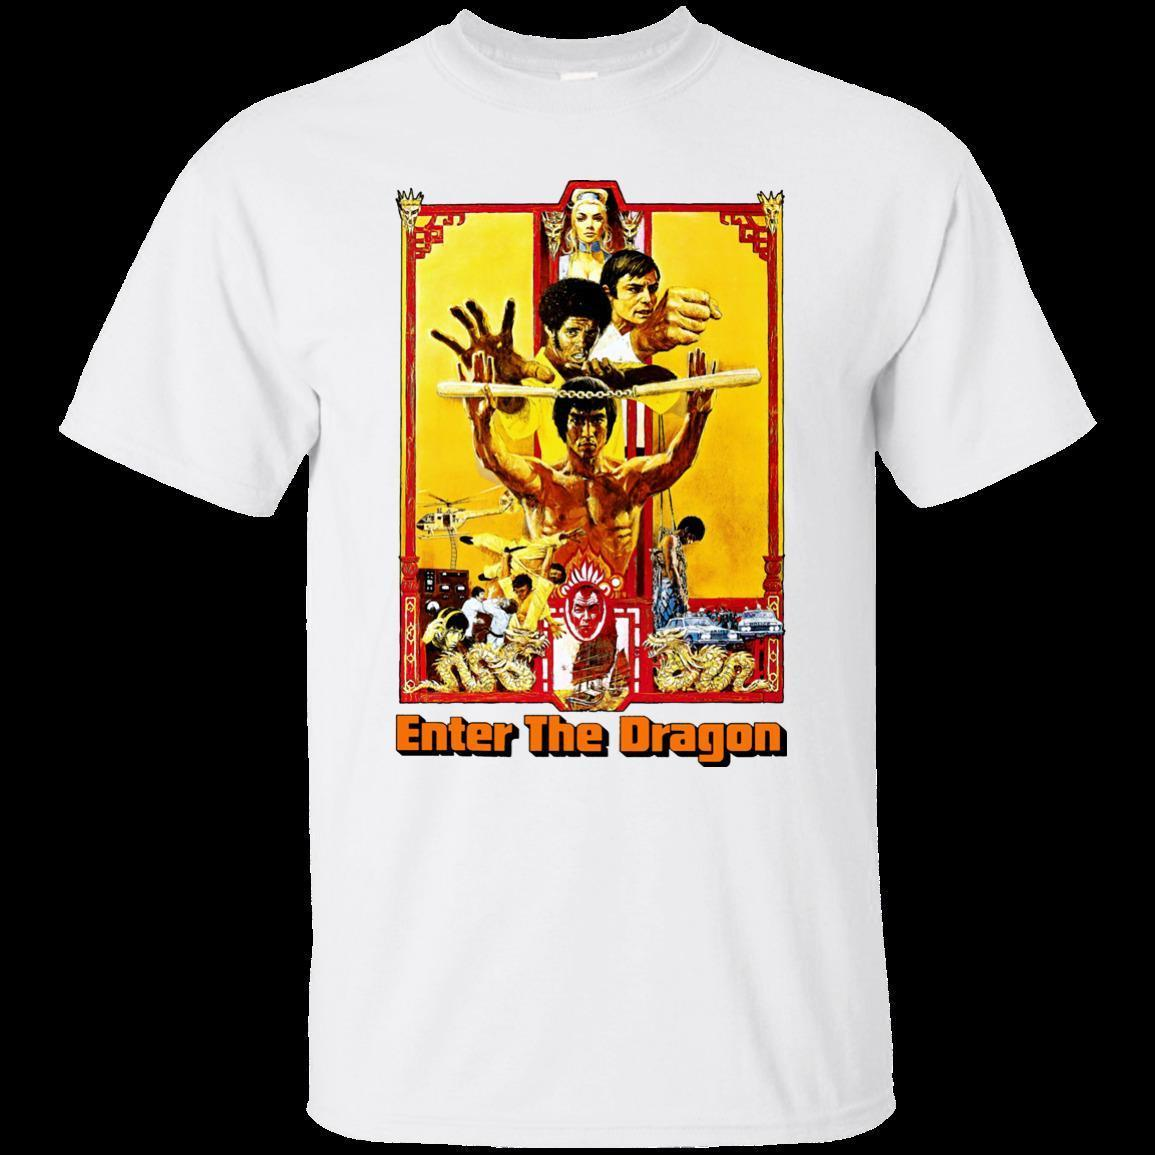 Bruce Lee, Enter the Dragon, Retro, Karate, Kung-fu,Movie, Game Men T Shirt  Short Sleeve Round Neck O-Neck Sunlight Men T-Shirt top tee